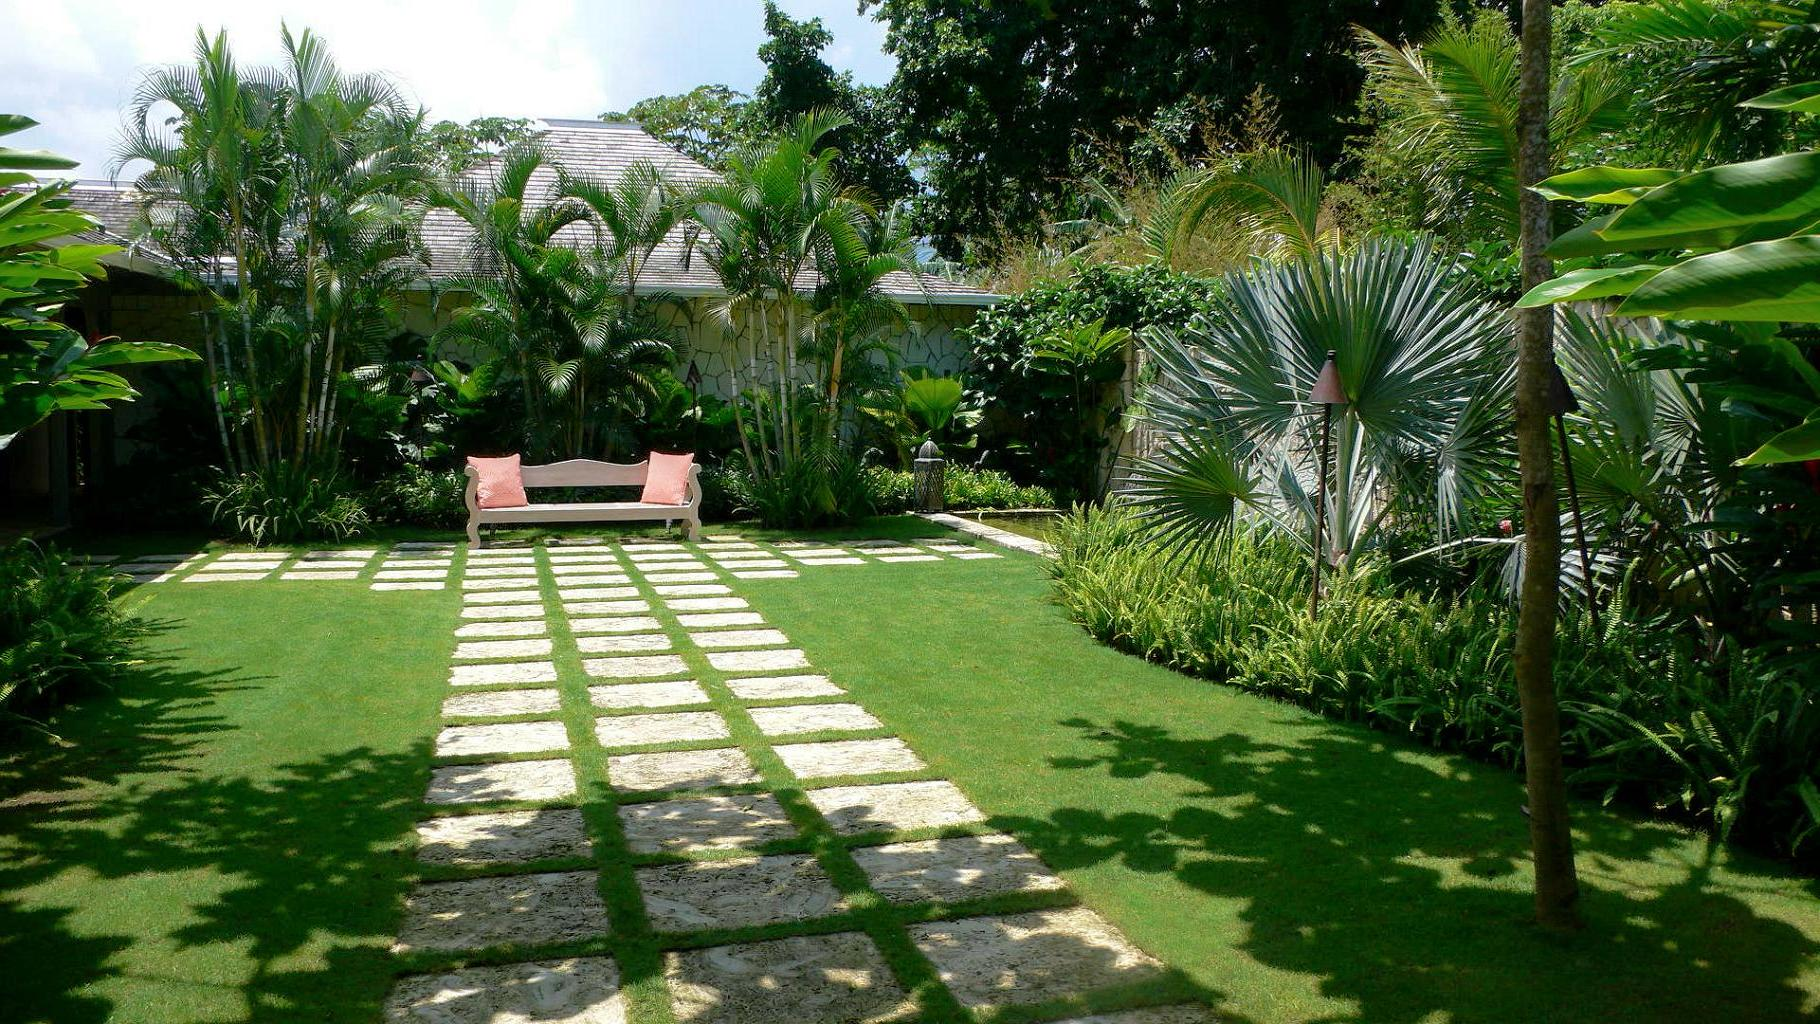 Tropical Garden Design & Landscaping in Brisbane, Queensland, AU